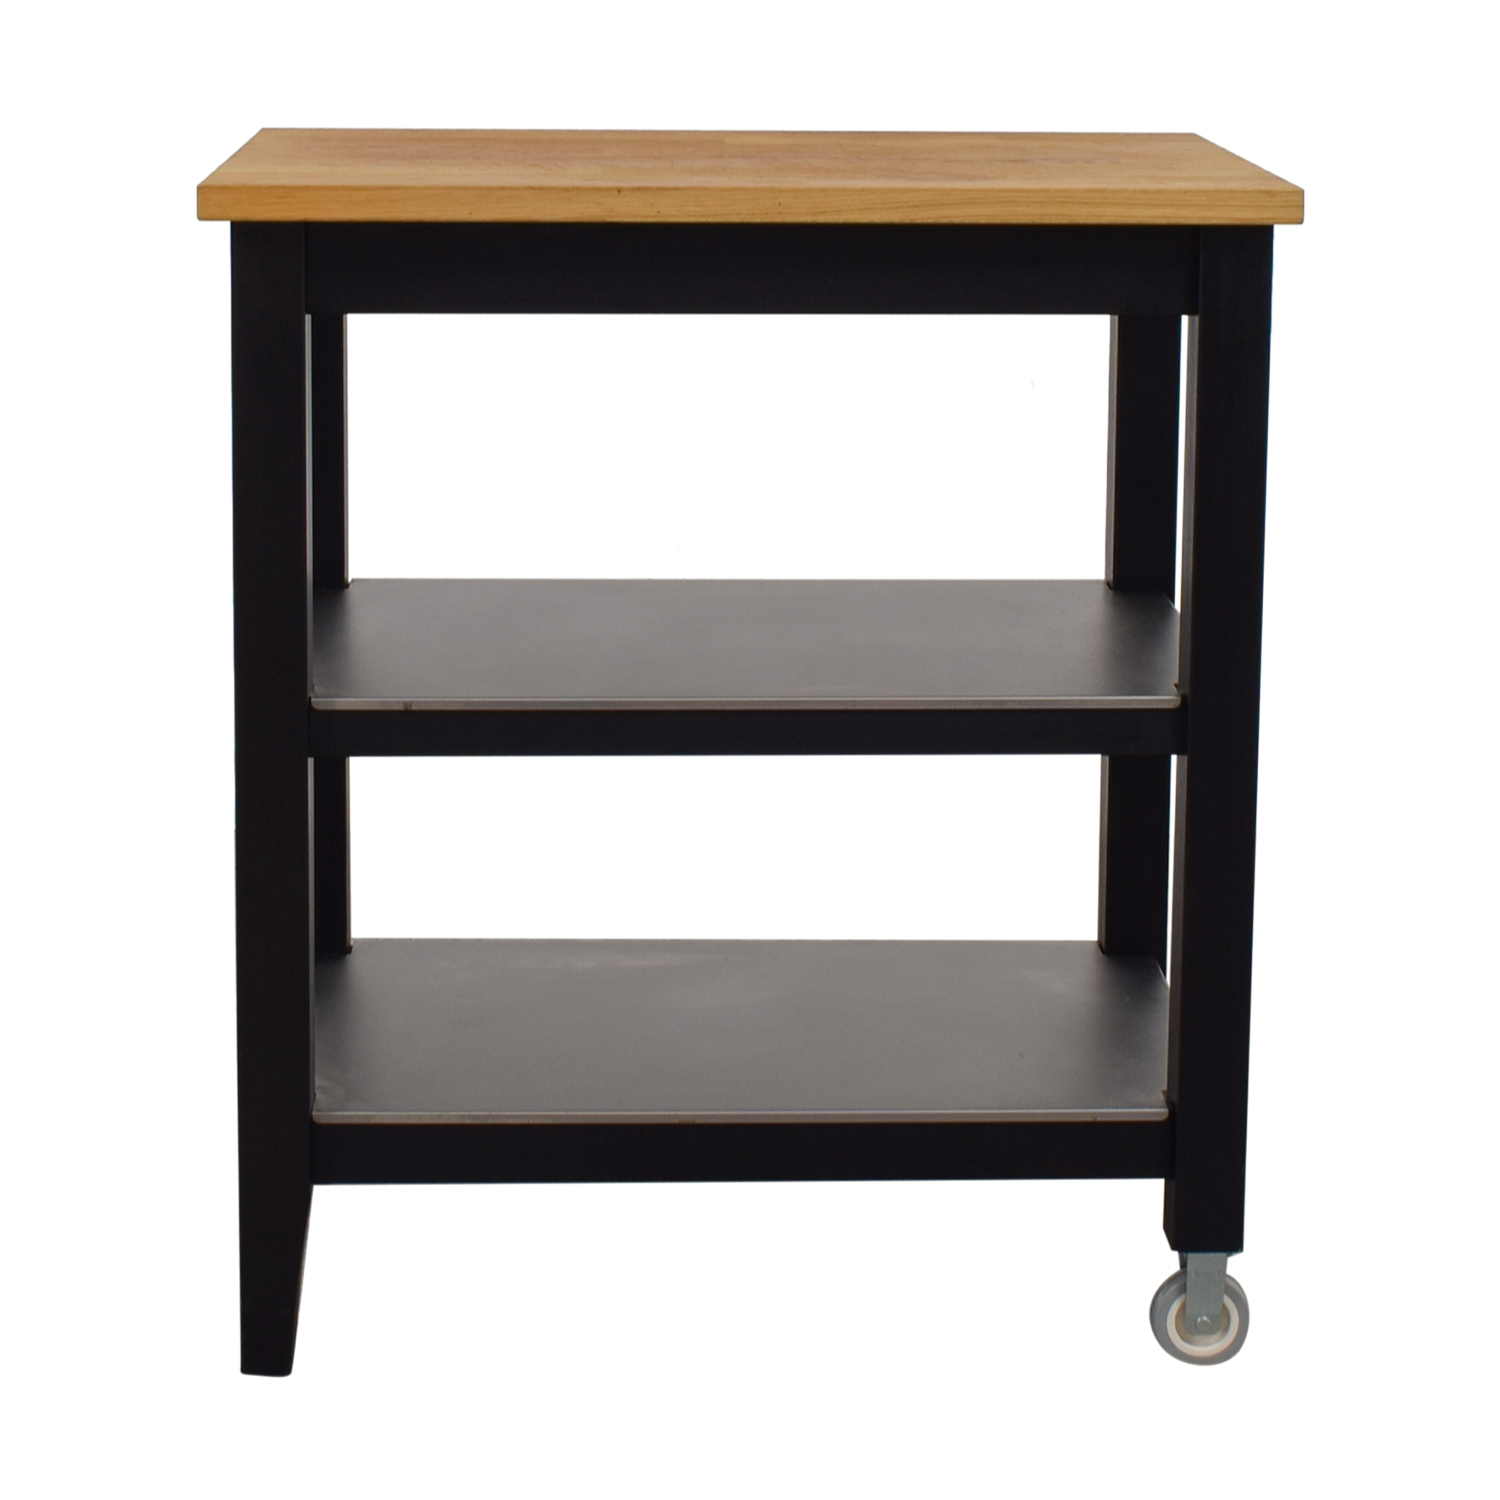 57% OFF - IKEA IKEA Stenstorp Wood and Black Kitchen Island Cart / Tables